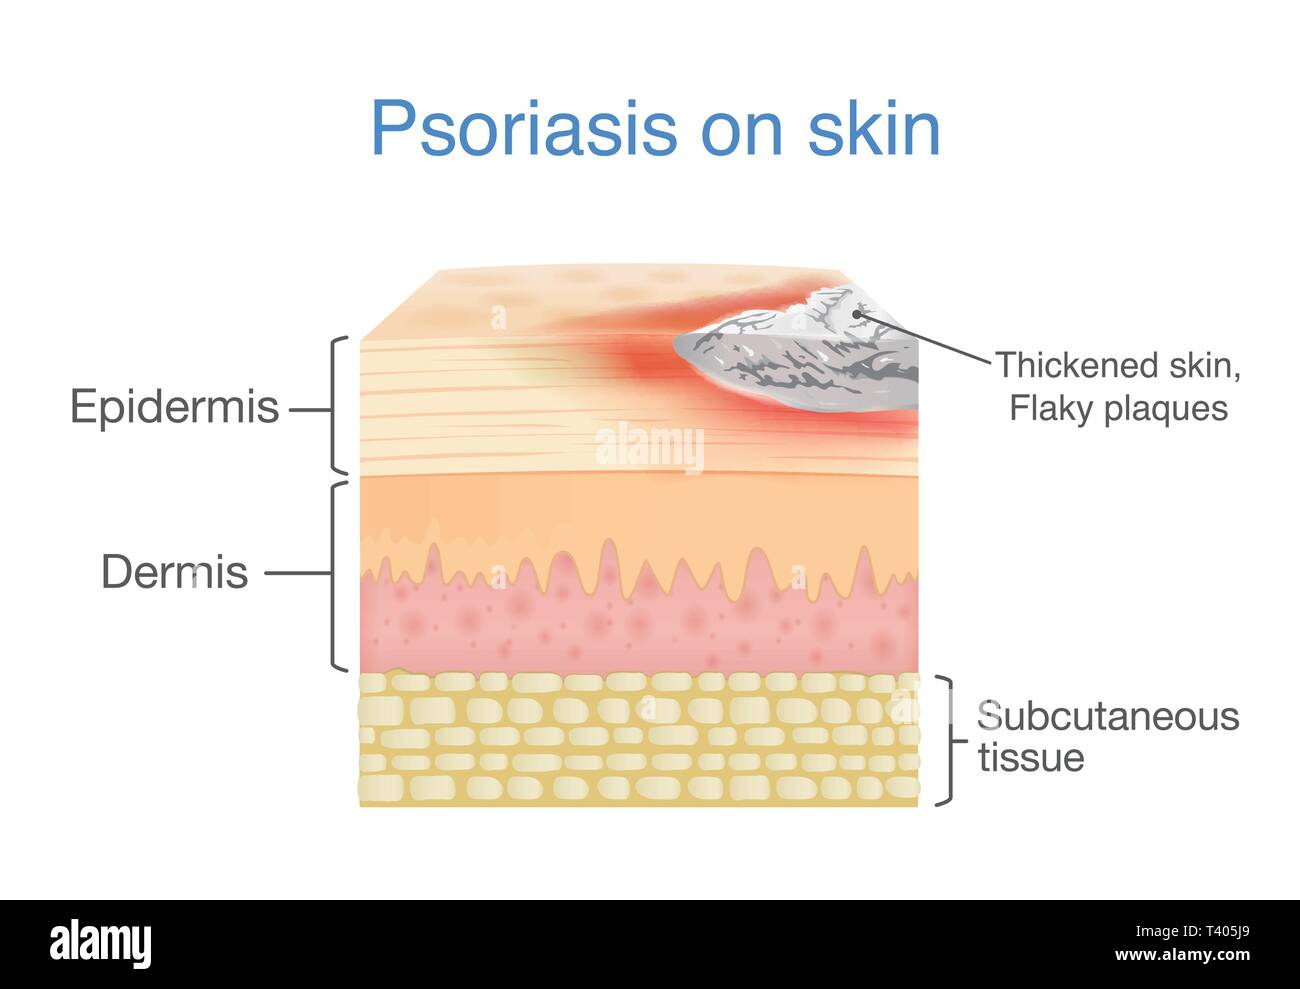 Illustration of human skin layer when plaque psoriasis signs and symptoms appear. - Stock Image